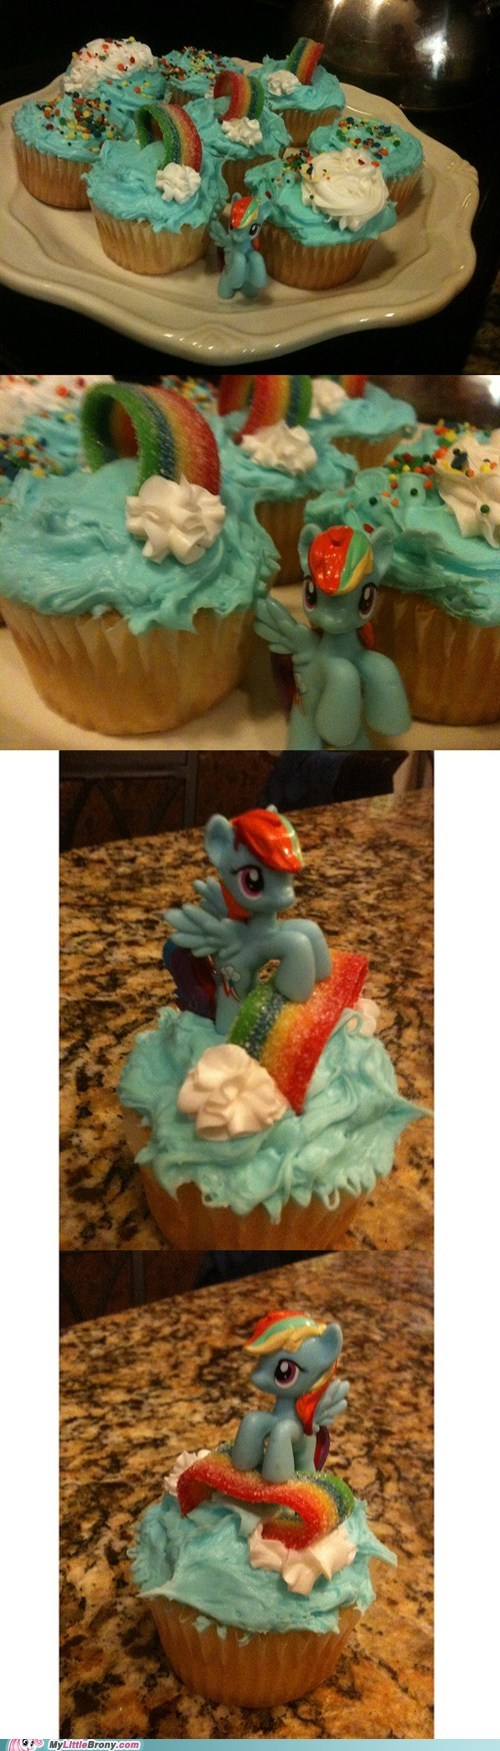 IRL awesome cupcakes food rainbow dash - 7163666176